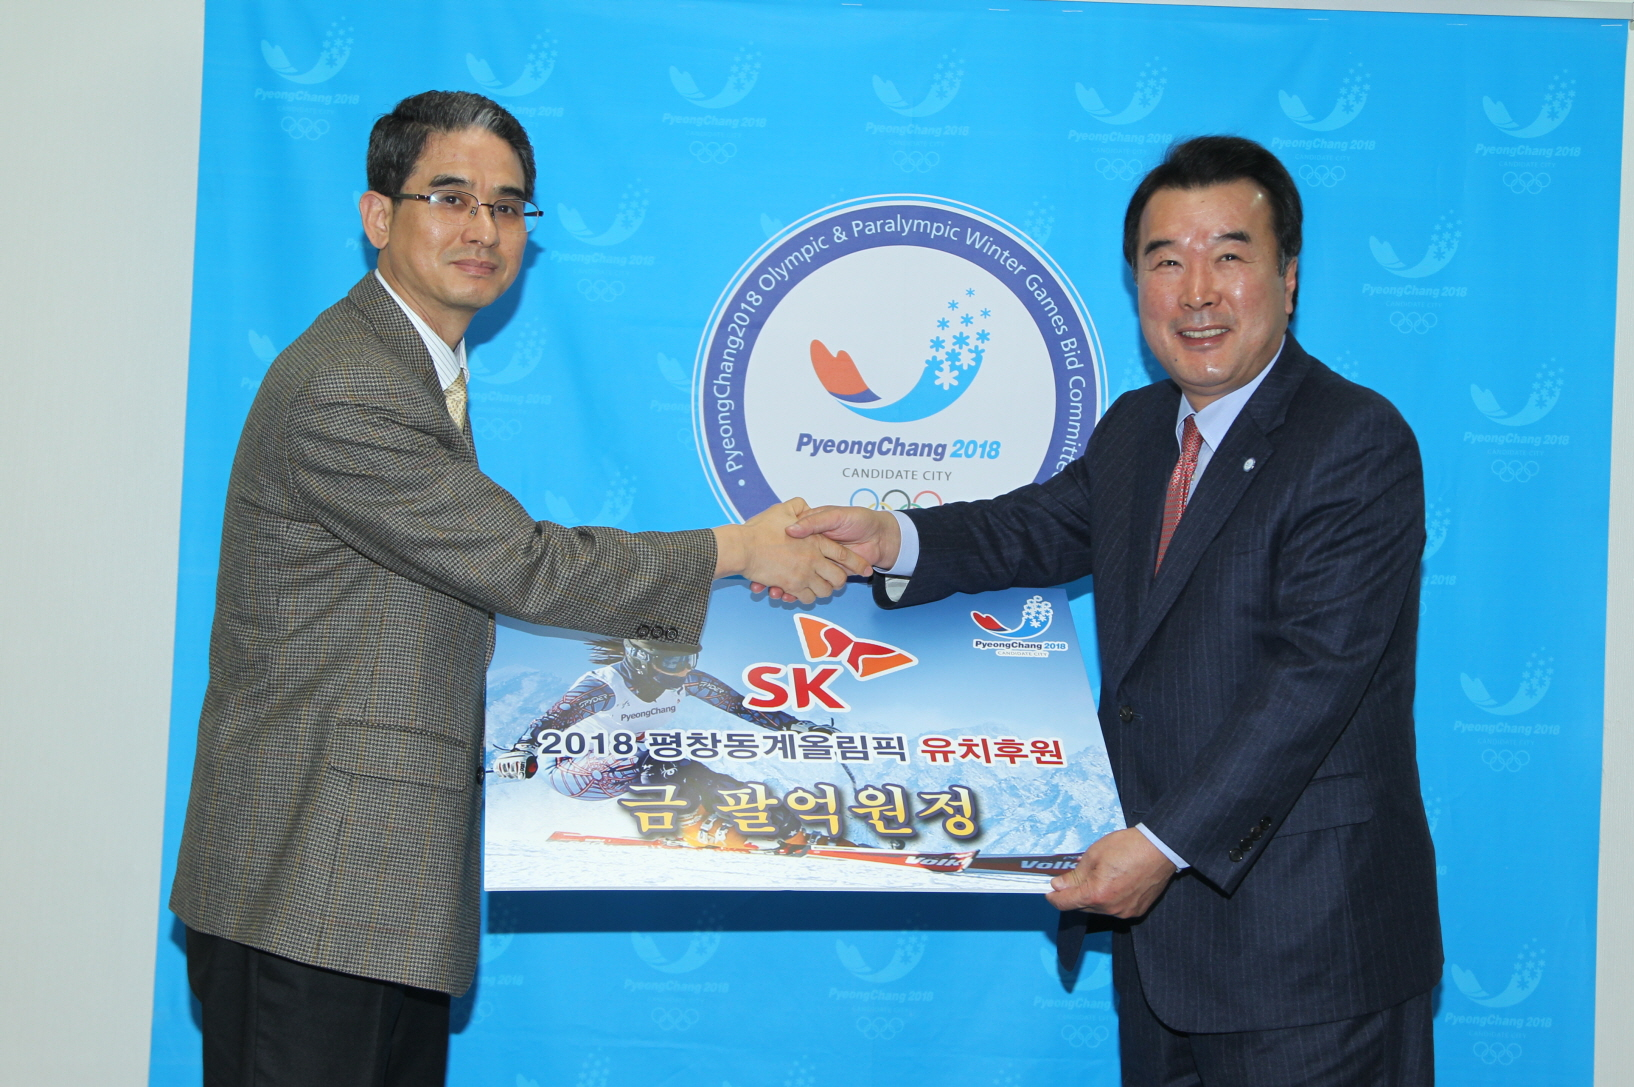 Pyeongchang_2018_sign_deal_with_SK_Group